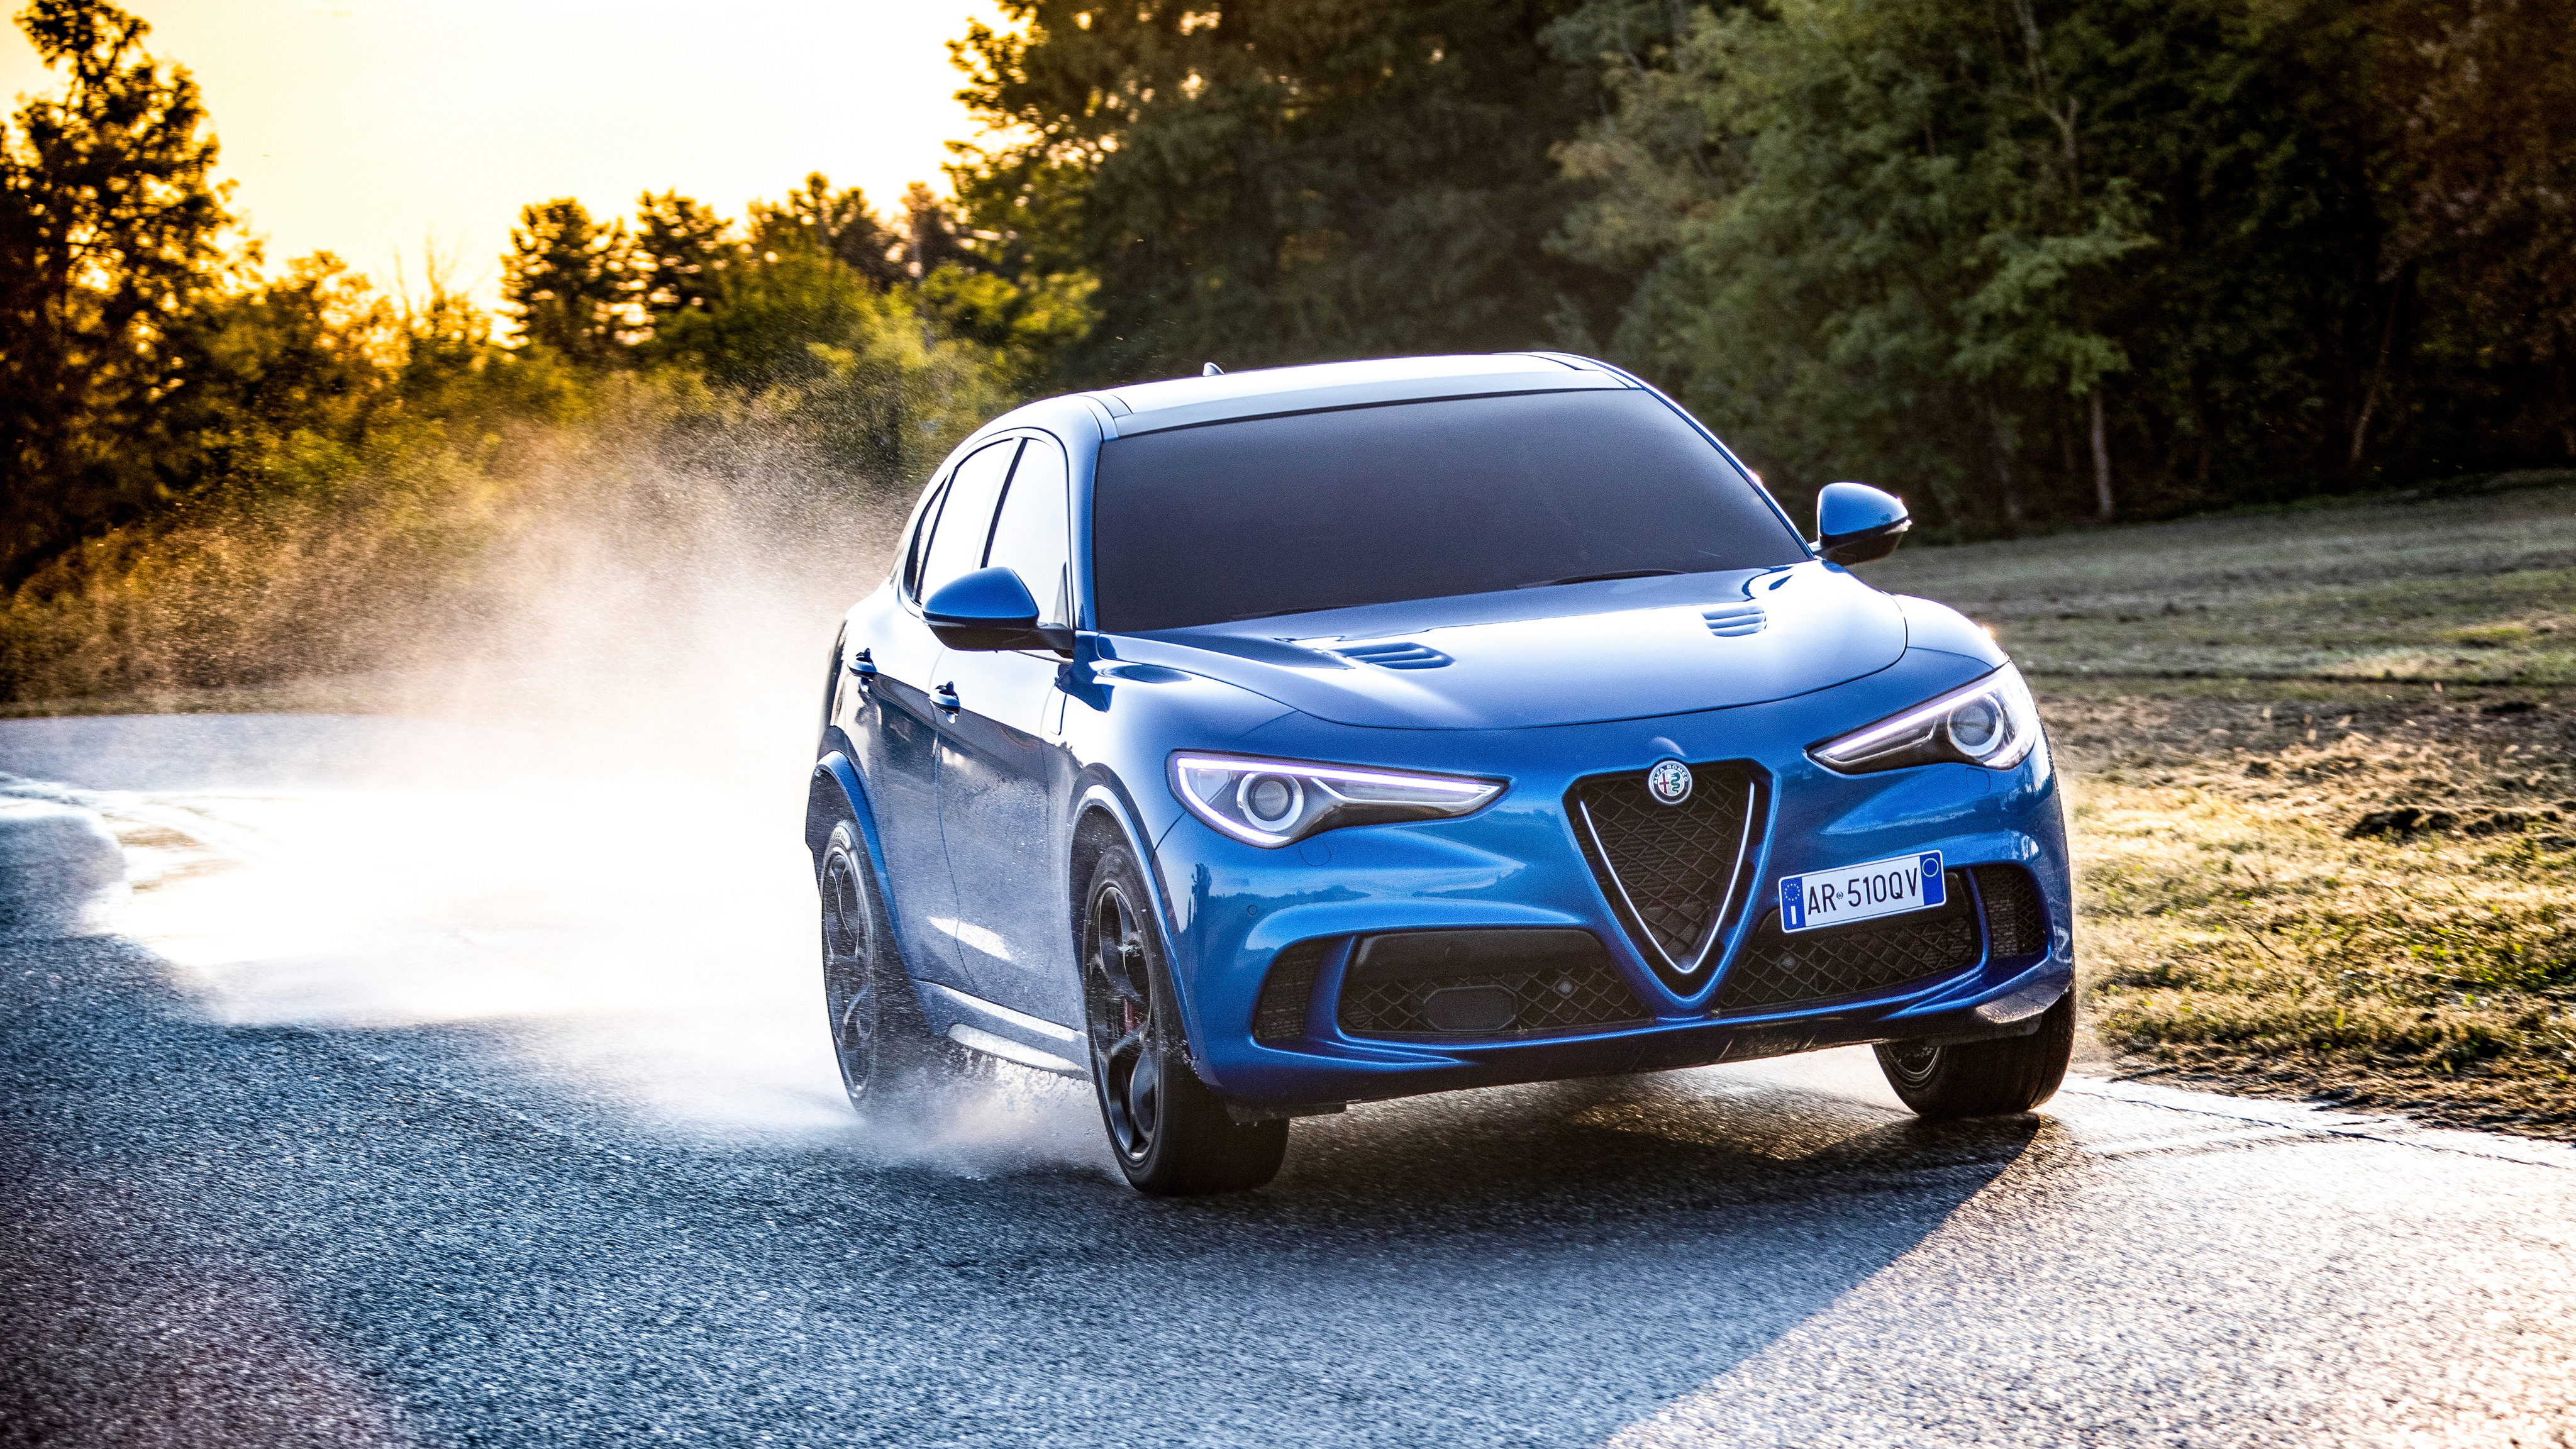 Alfa Romeo Stelvio Quadrifoglio Hd Cars 4k Wallpapers Images Backgrounds Photos And Pictures